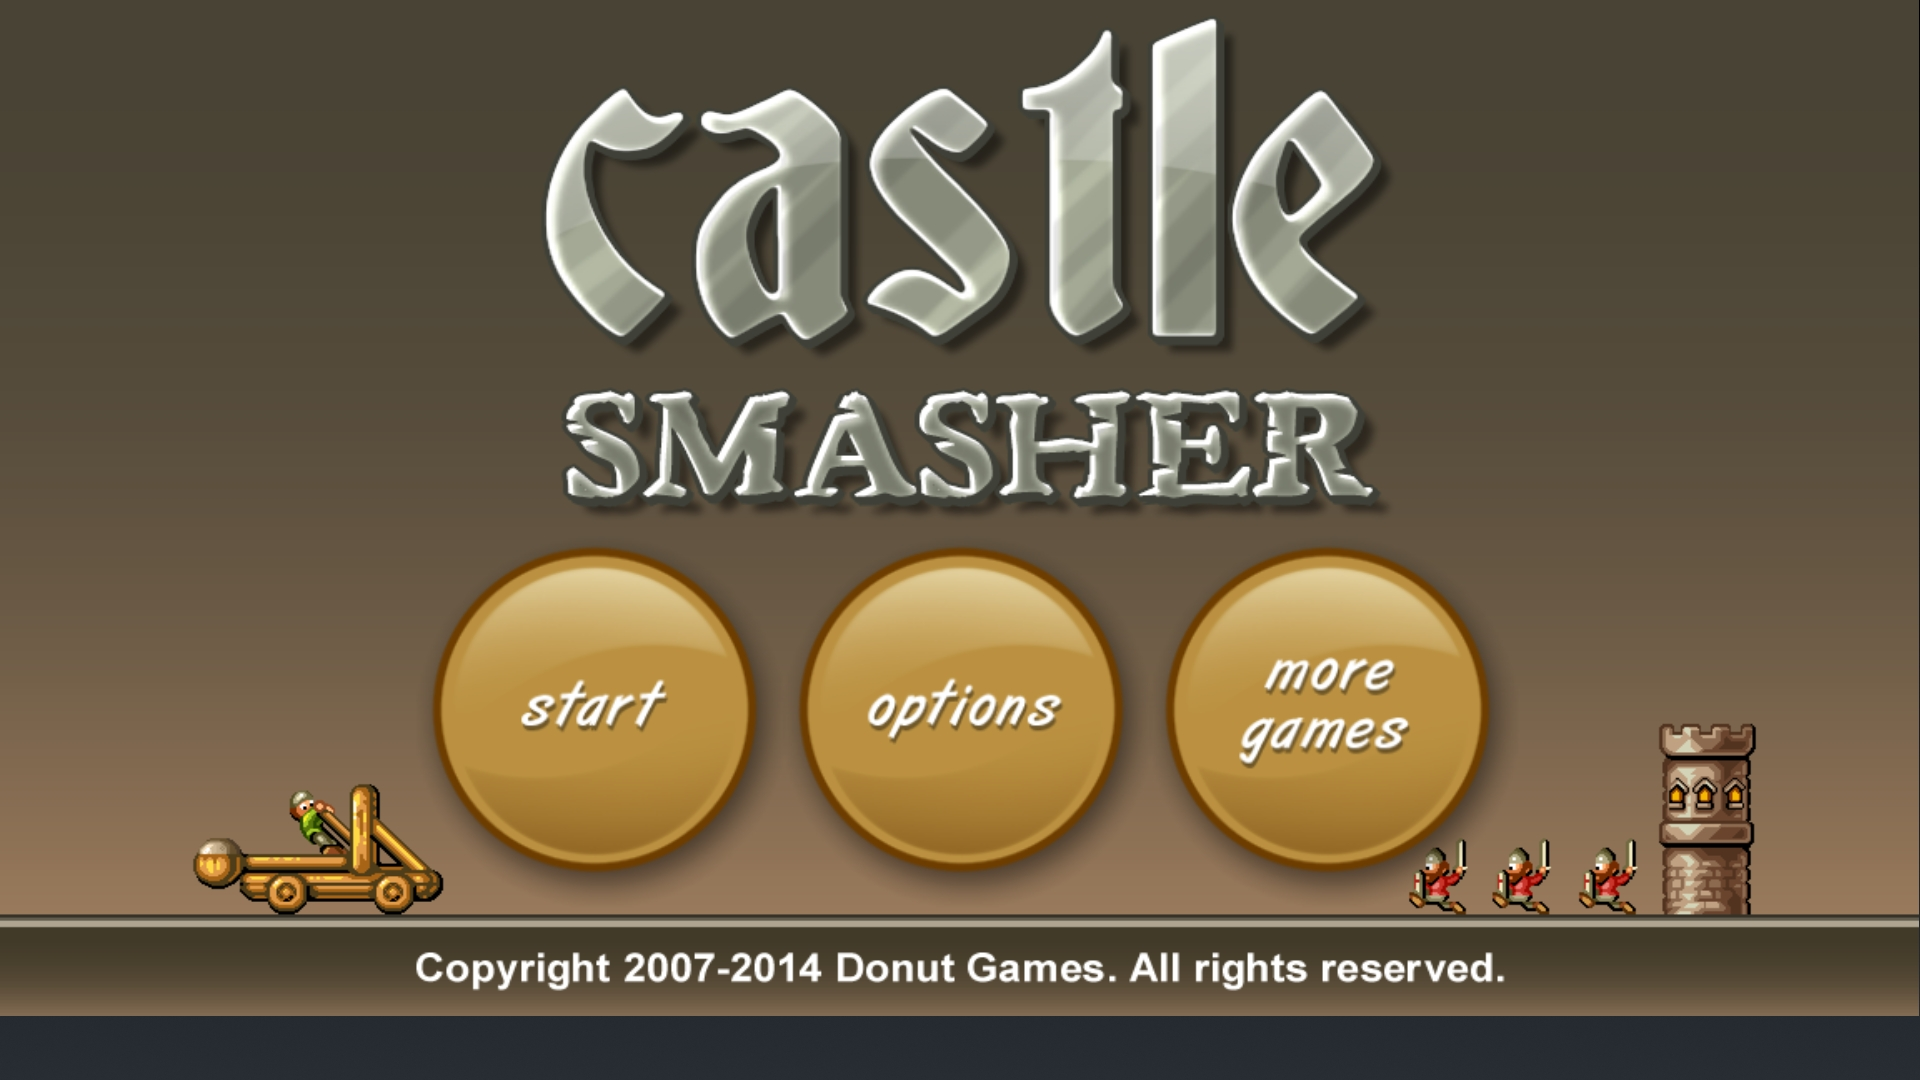 Bamse: Castle Smasher: Challenges: 18 Stone Splitting (Android) 44 points on 2019-09-05 03:06:03